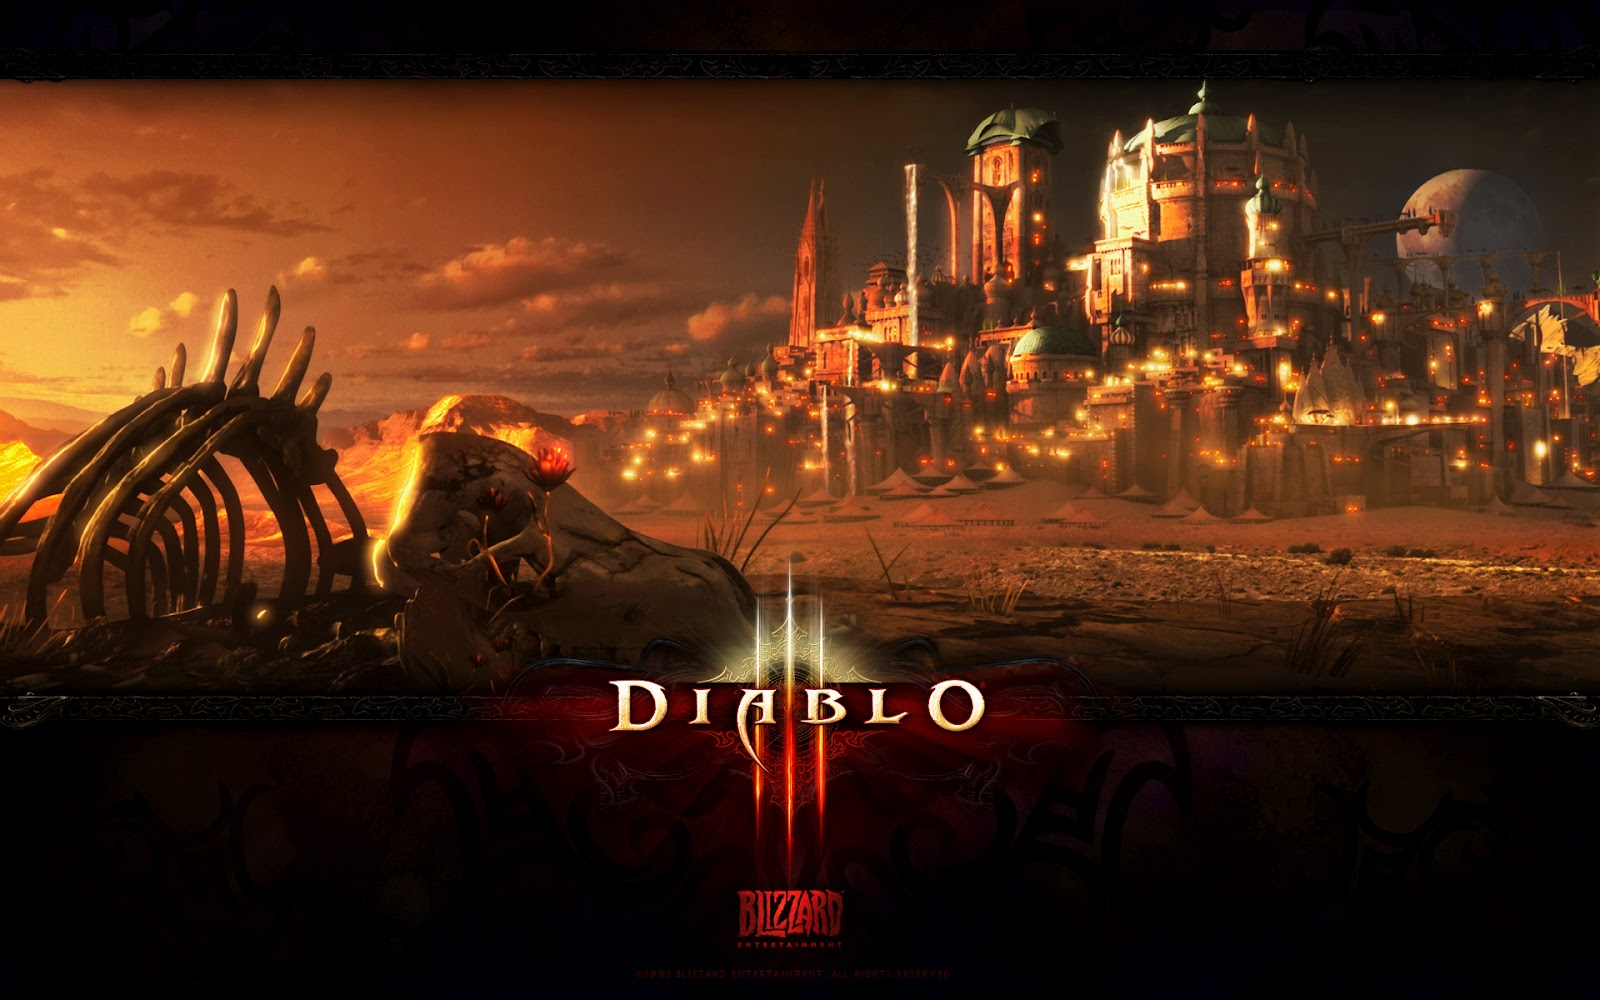 Diablo 3 Game Characters HD Wallpapers| HD Wallpapers ,Backgrounds ,Photos ,Pictures, Image ,PC